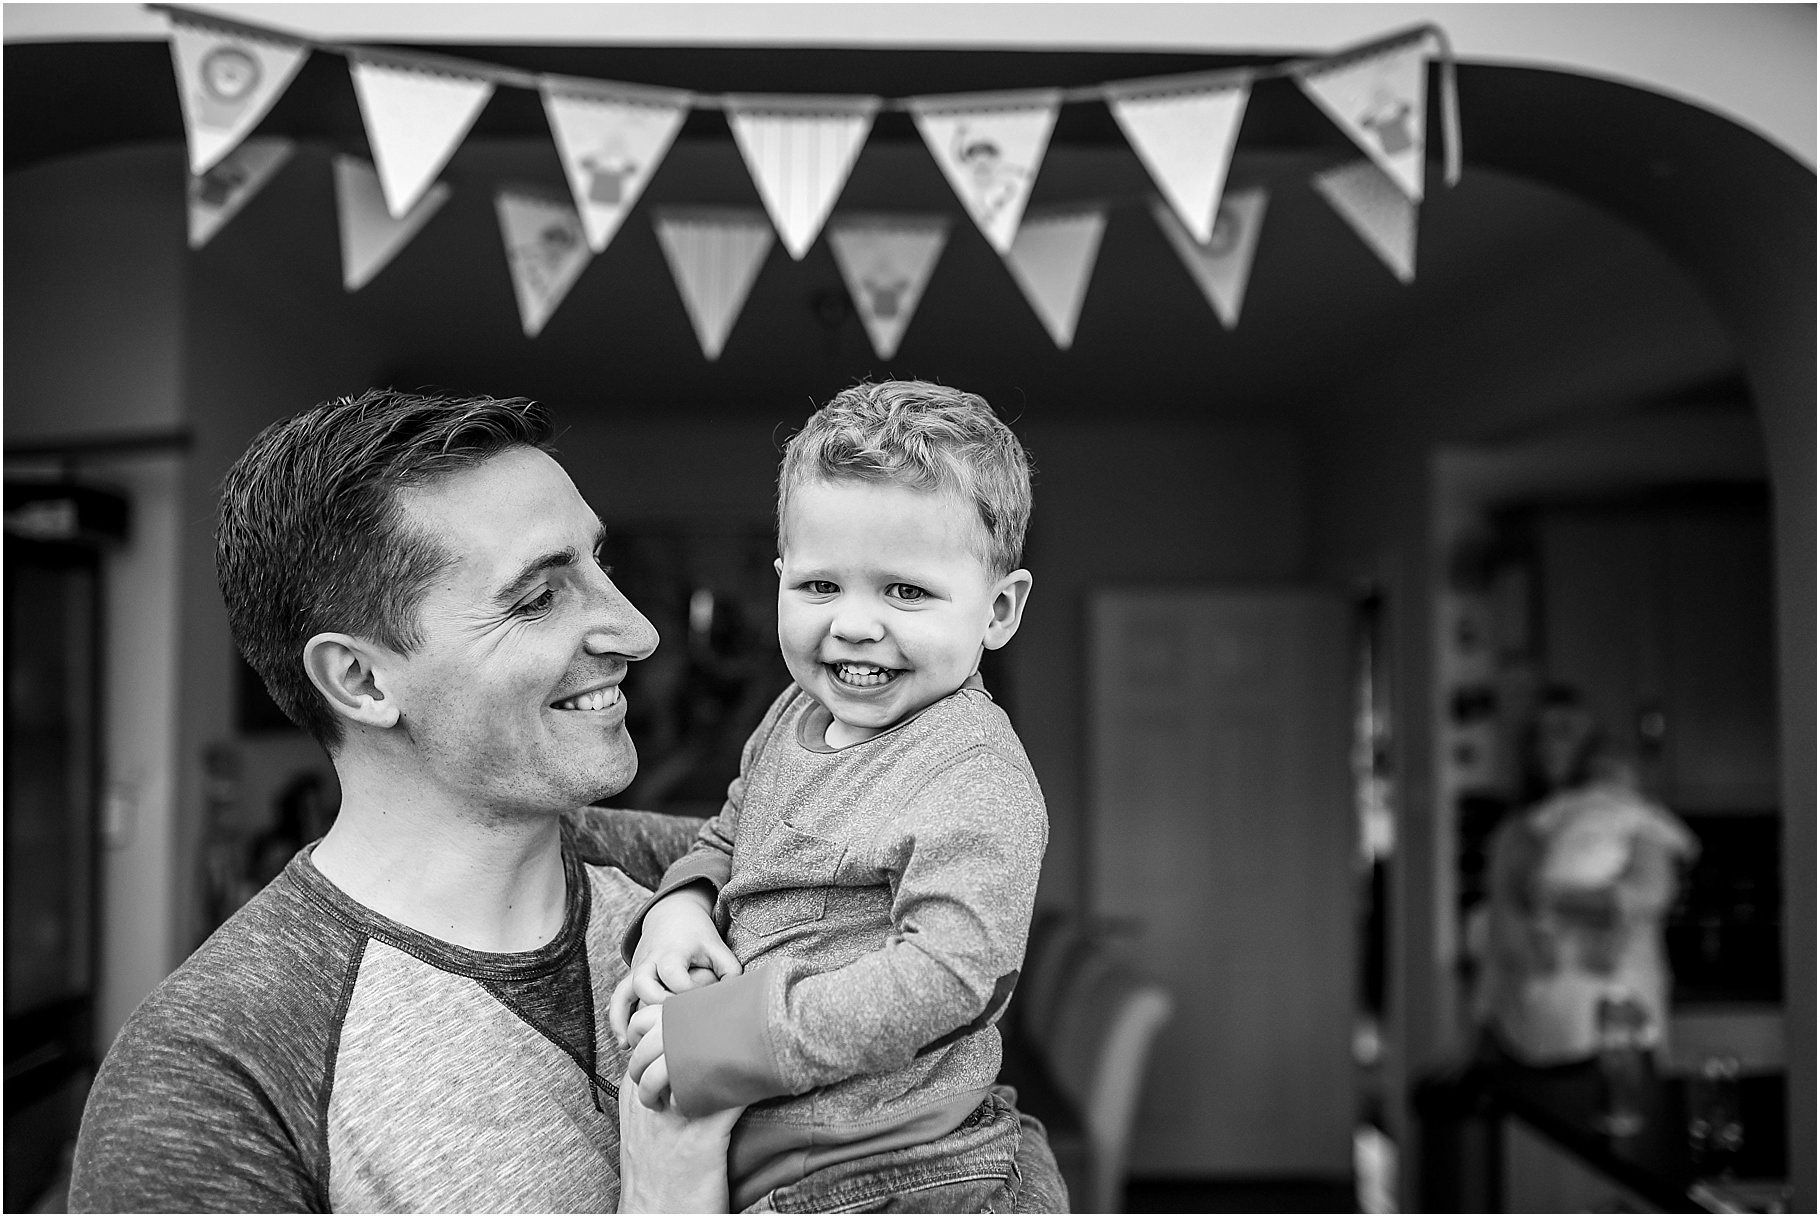 lancashire-family-photography-steve-april-jack-ollie-theo-45.jpg